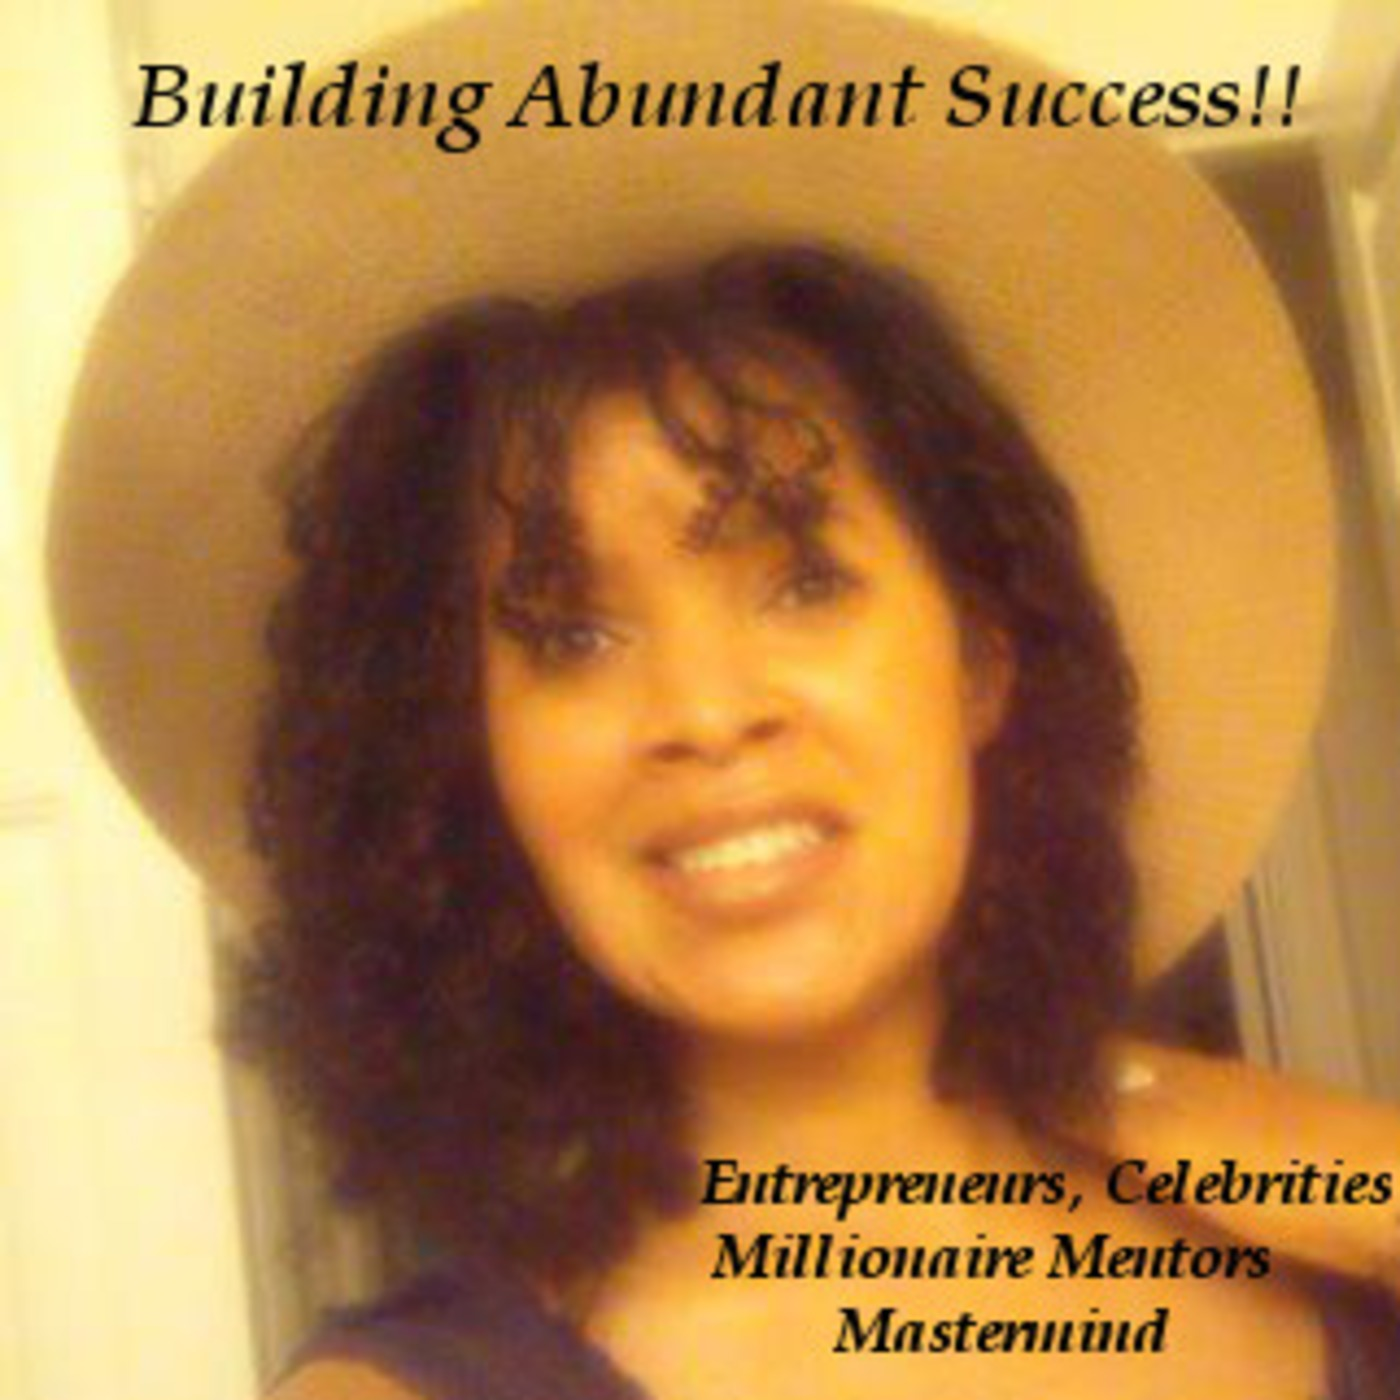 Building Abundant Success!!© with Sabrina-Marie Wilson